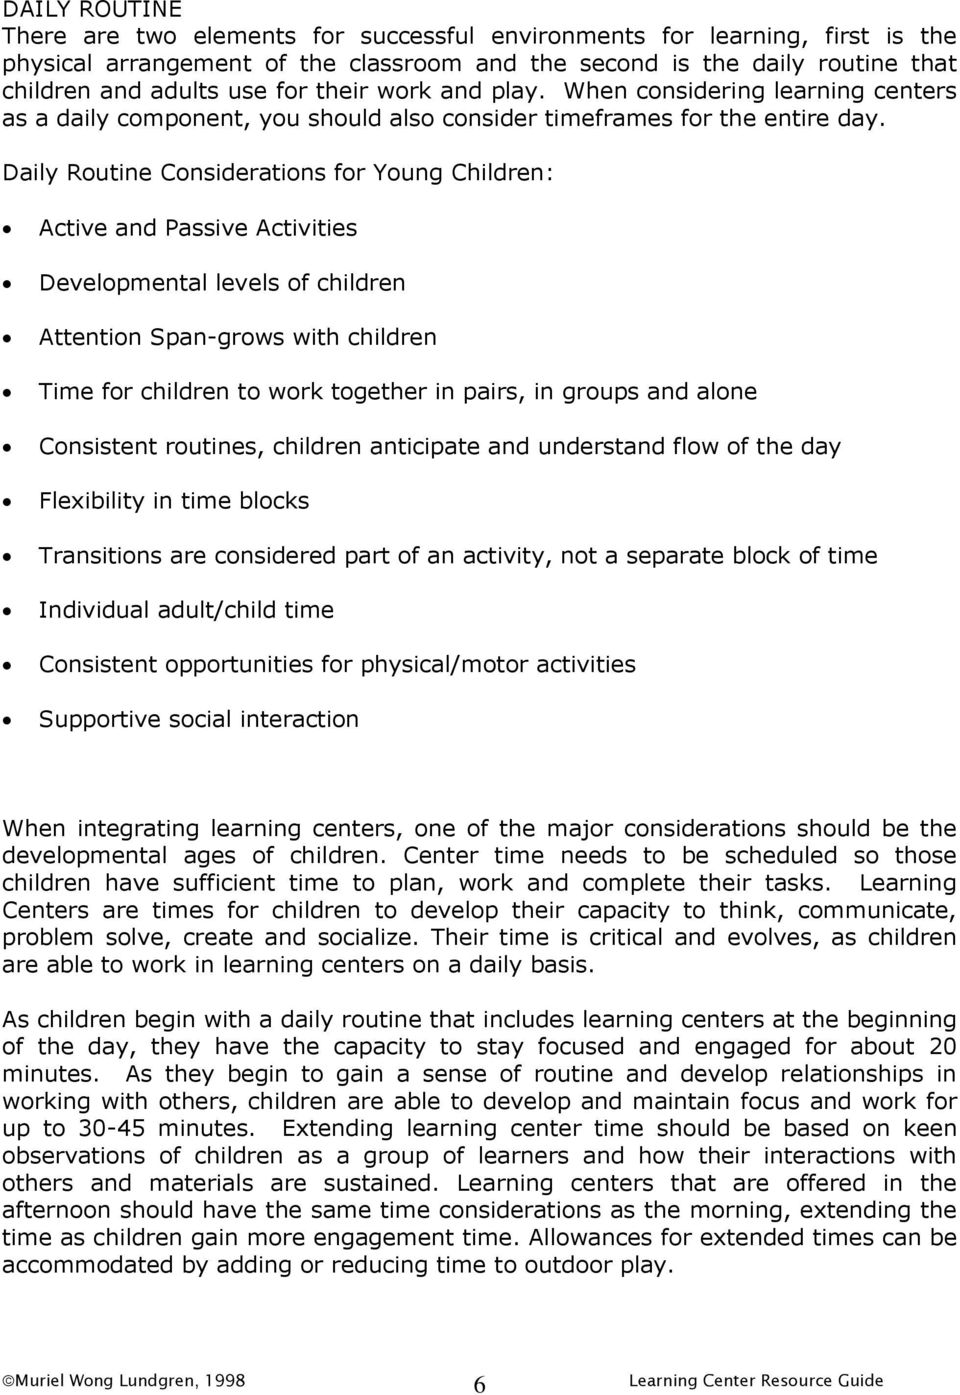 Daily Routine Considerations for Young Children: Active and Passive Activities Developmental levels of children Attention Span-grows with children Time for children to work together in pairs, in